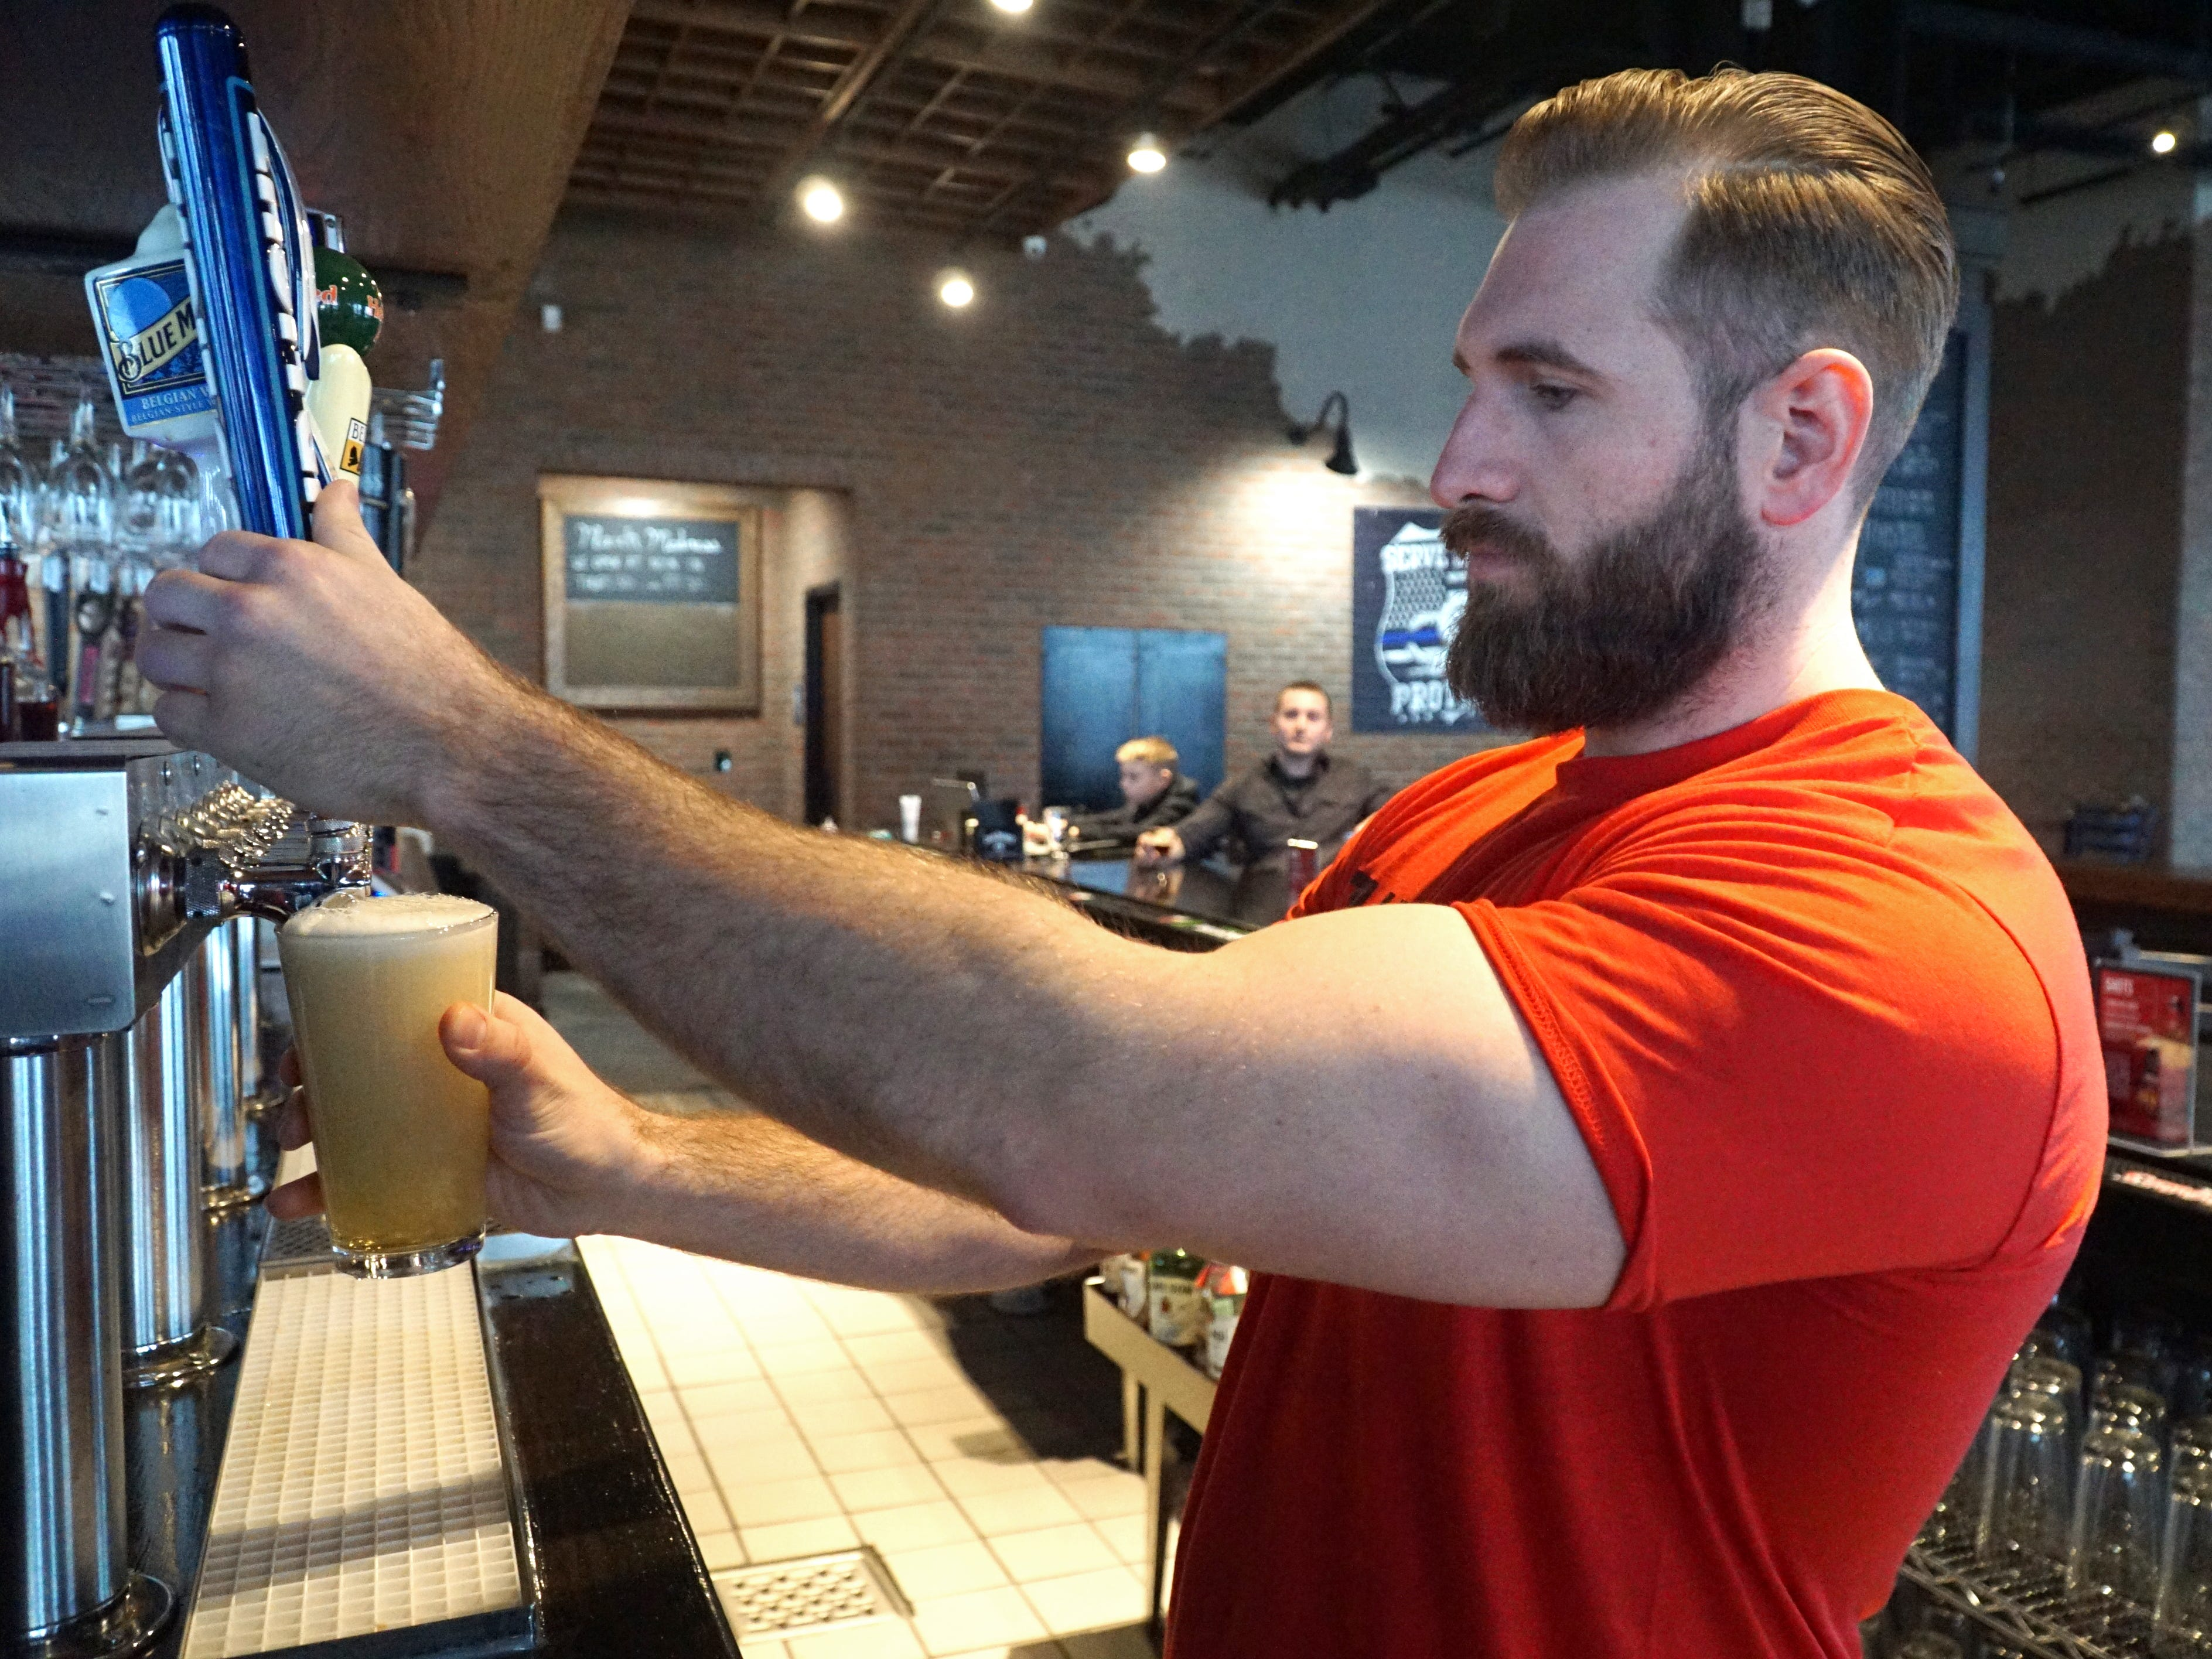 5th Avenue bartender Dan Vercellino pulls a beer from the taps at the Novi bar on March 7.